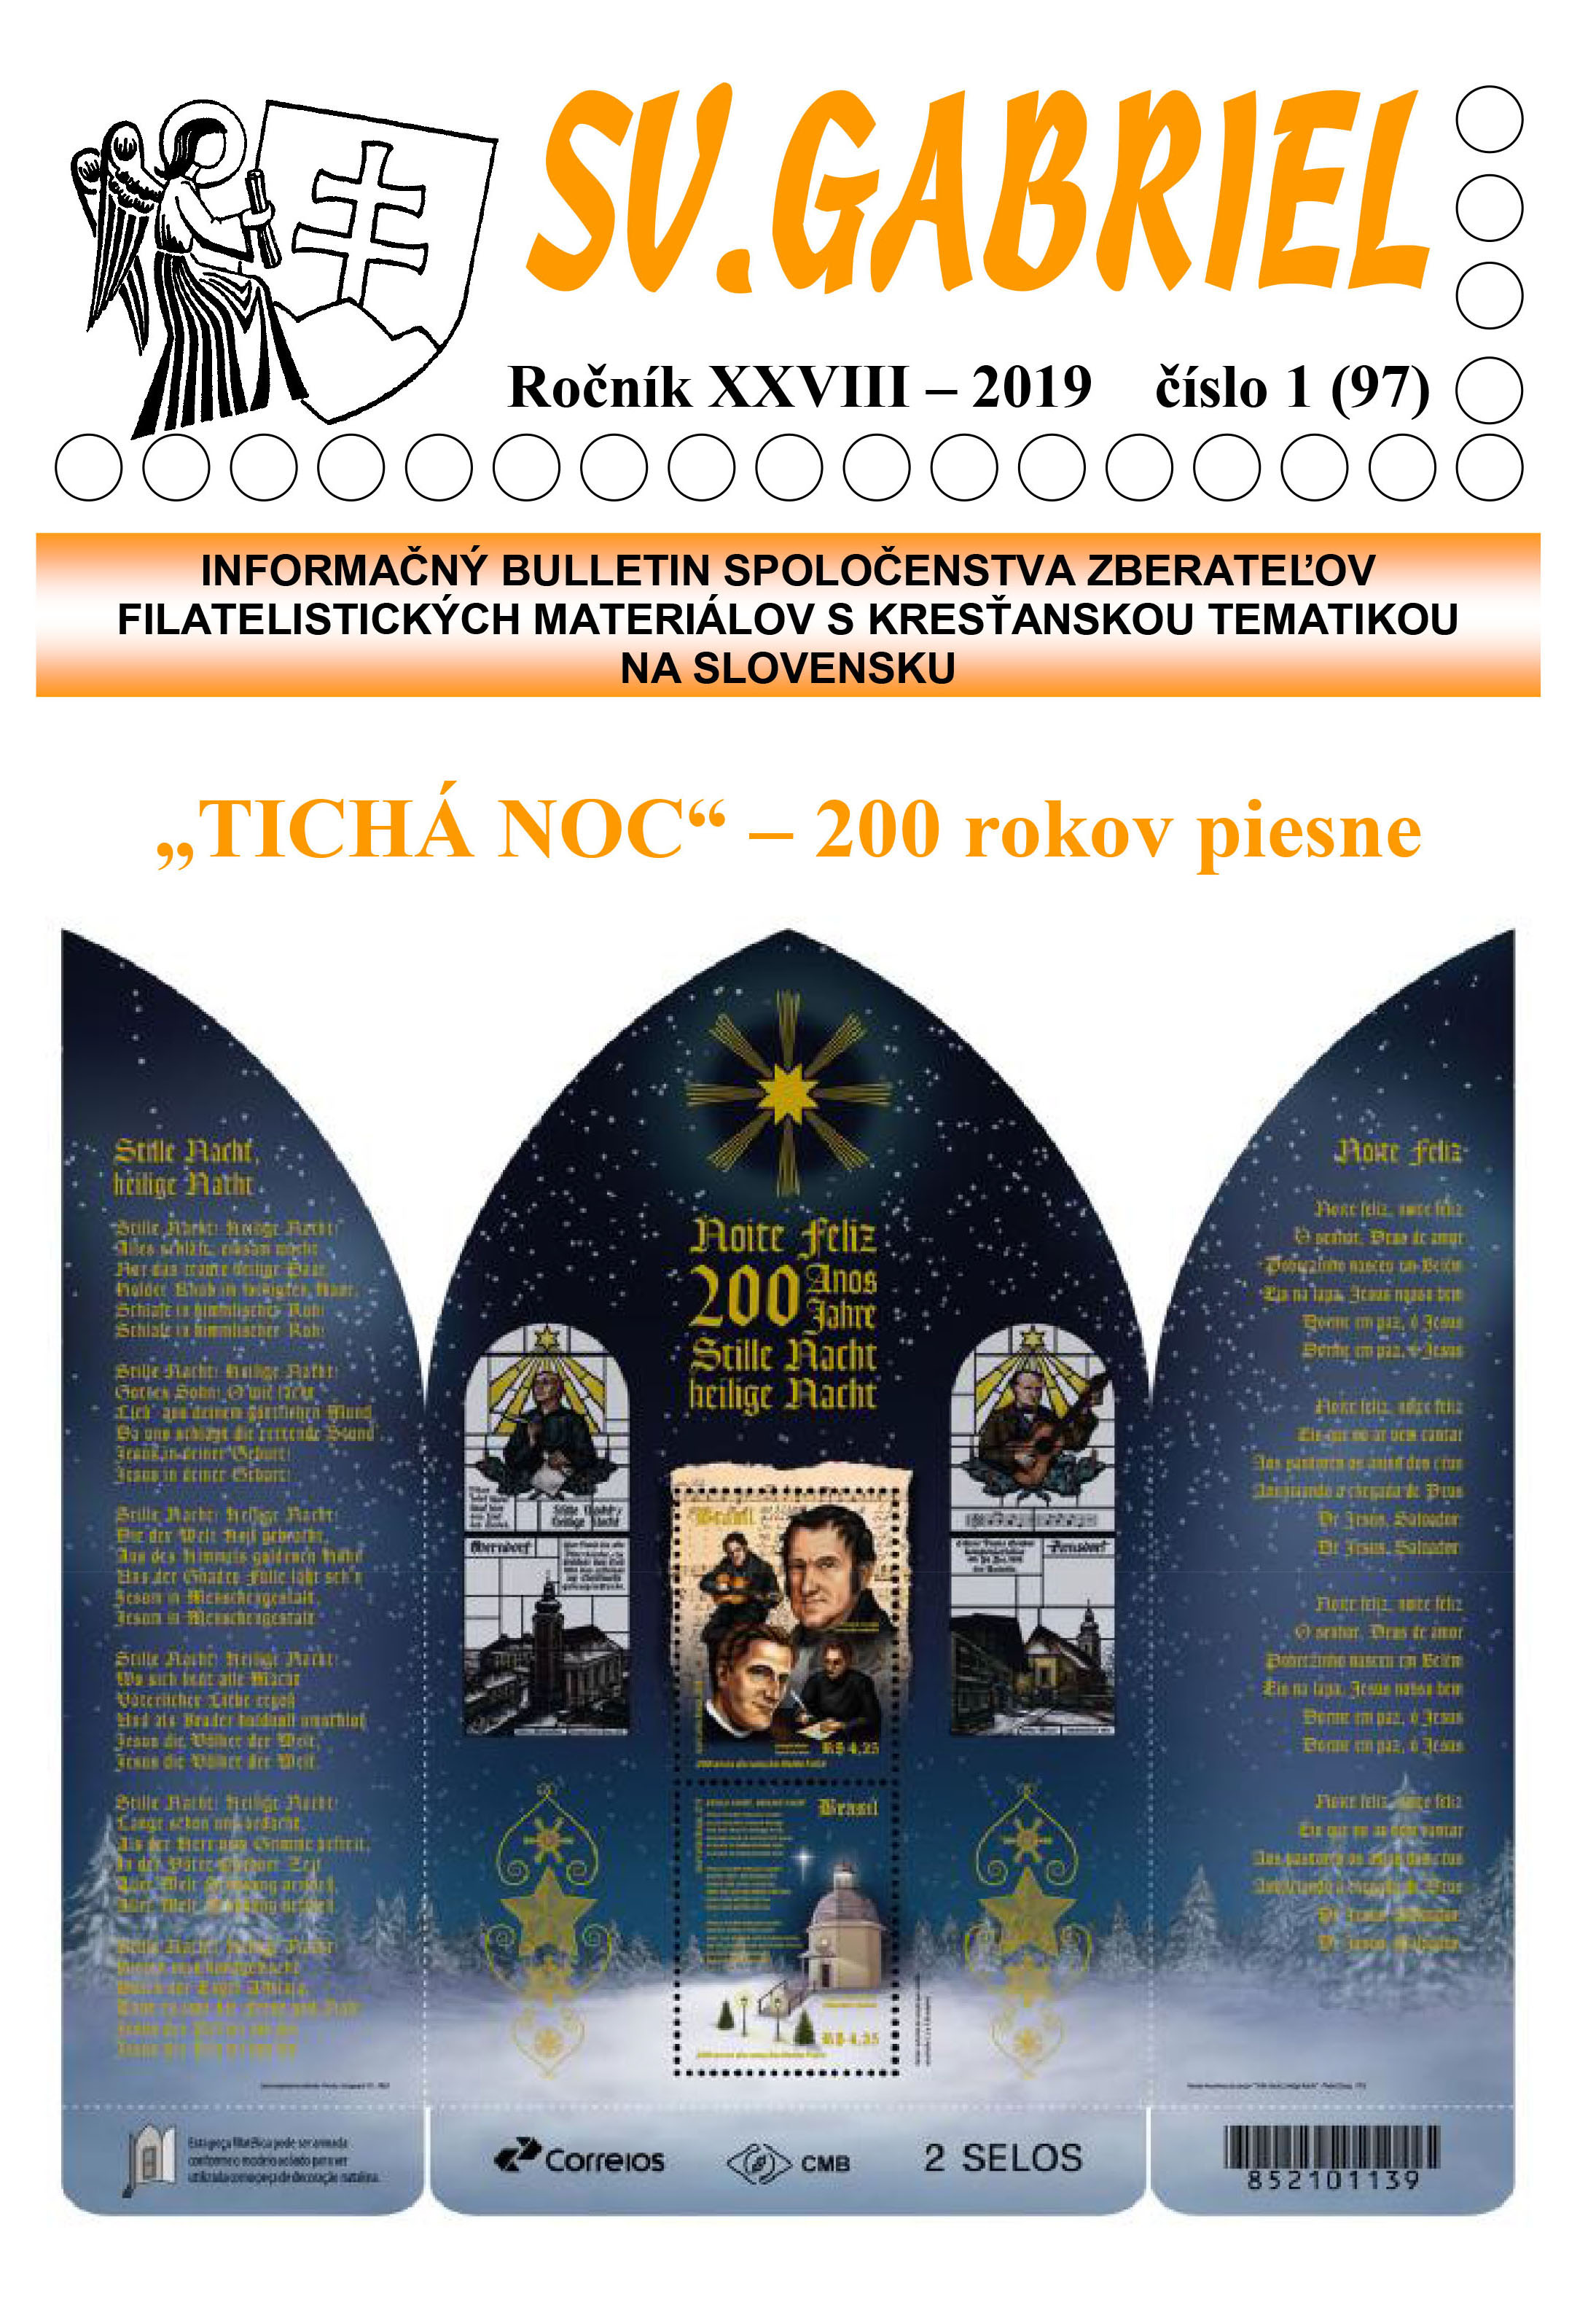 New issue of the bulletin SV. GABRIEL 2019/1 (97)